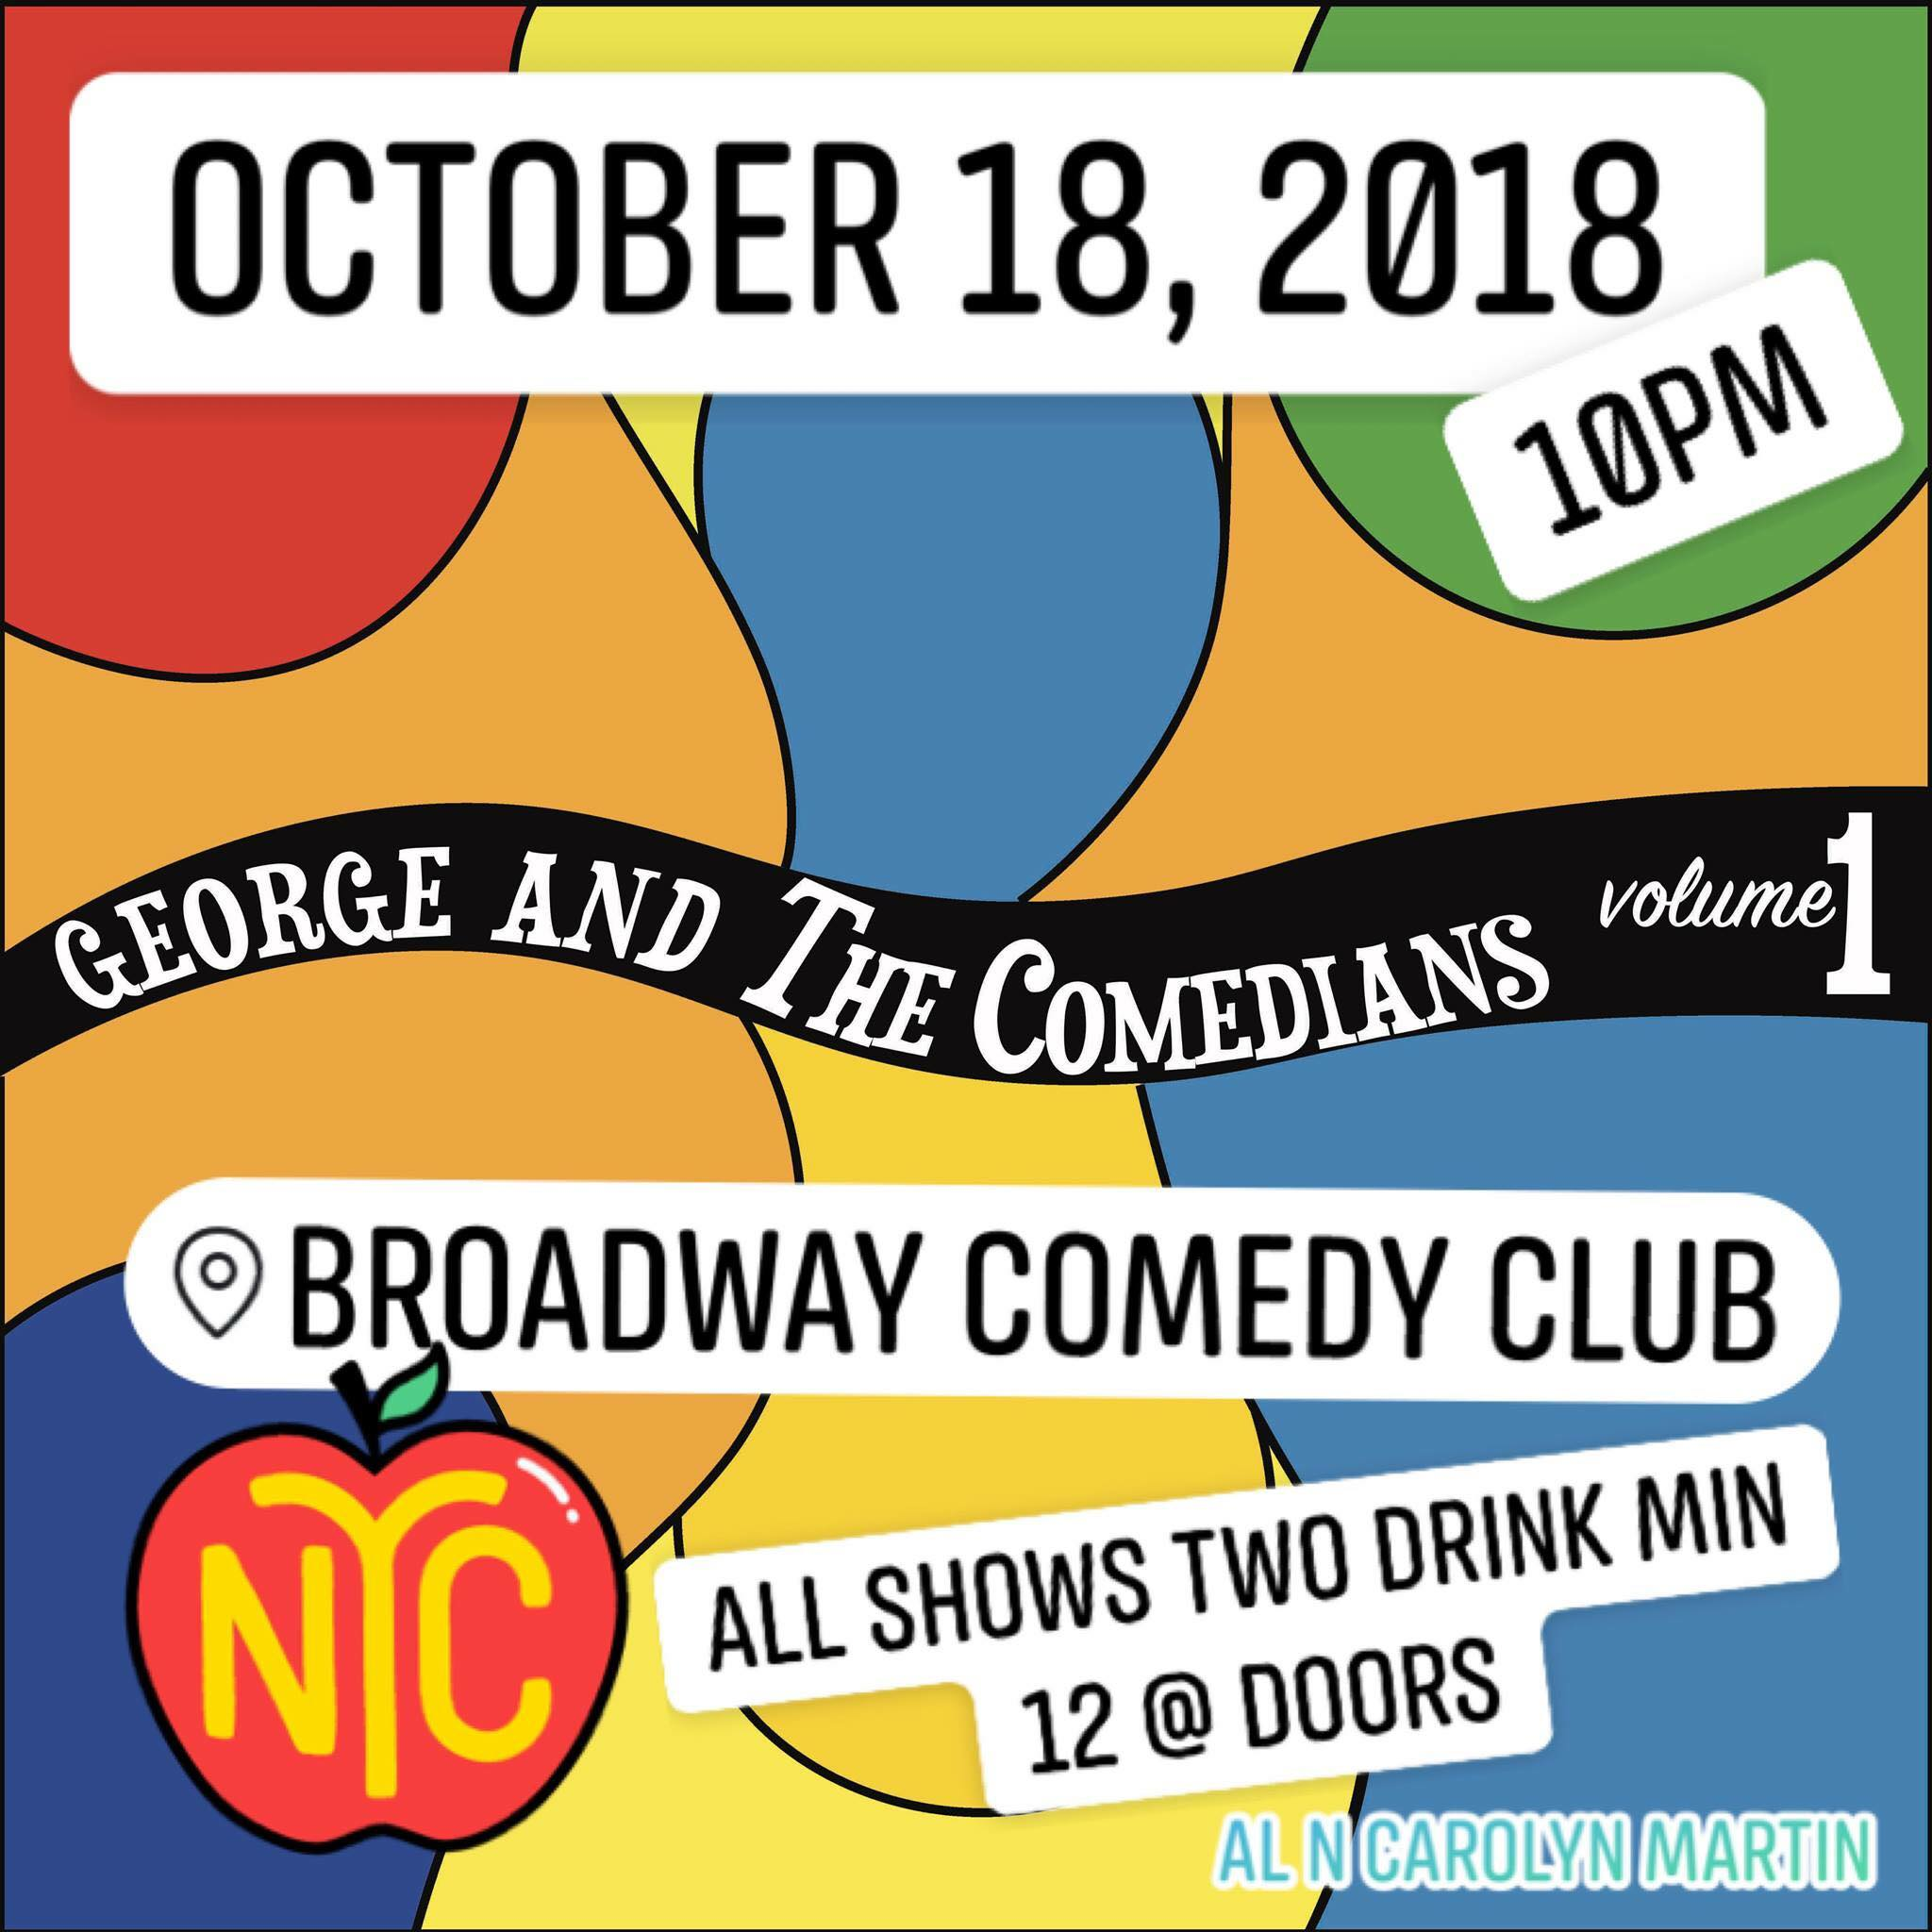 George and the Comedians Friday, Oct 18th 1o:oopm-11:3opm Broadway Comedy Club | 318 West 53rd St | New York, NY 10019